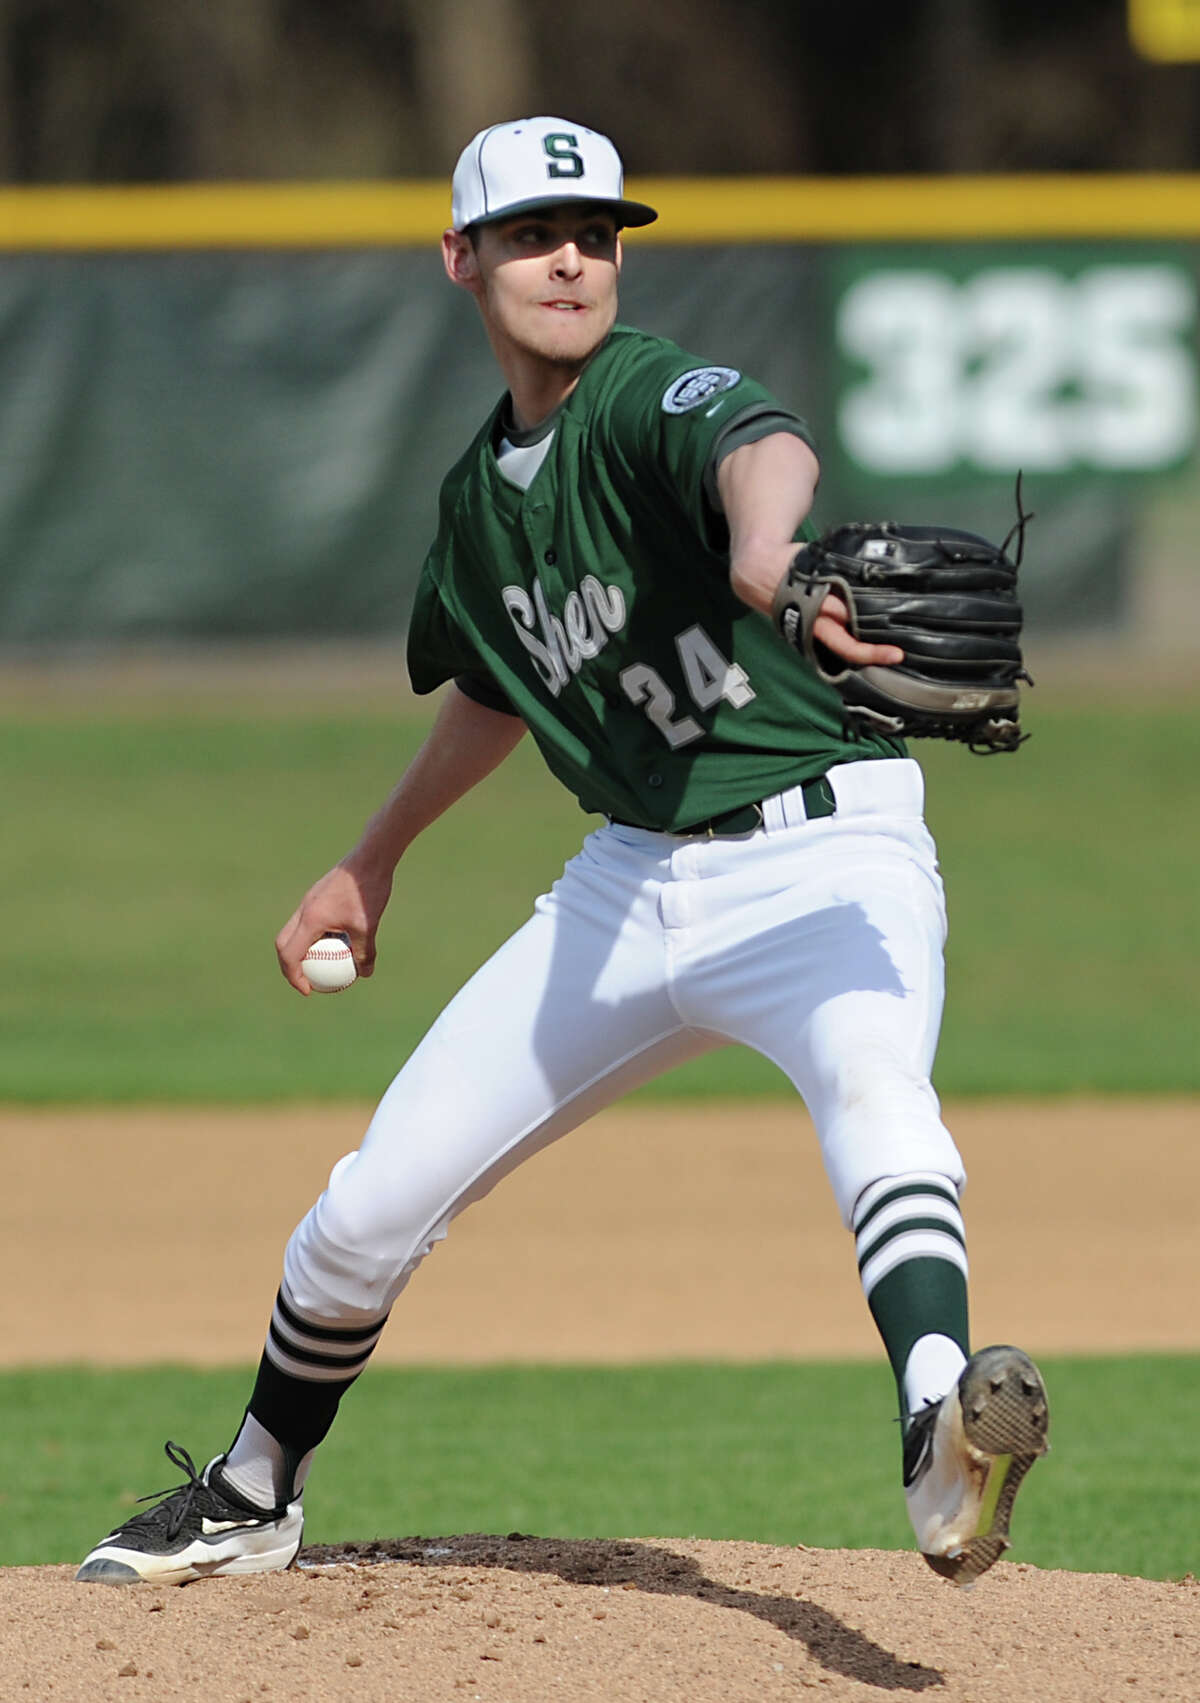 Shenendehowa pitcher Ben Anderson throws the ball during a baseball game against Saratoga on Monday, April 18, 2016 in Clifton Park, N.Y. (Lori Van Buren / Times Union)